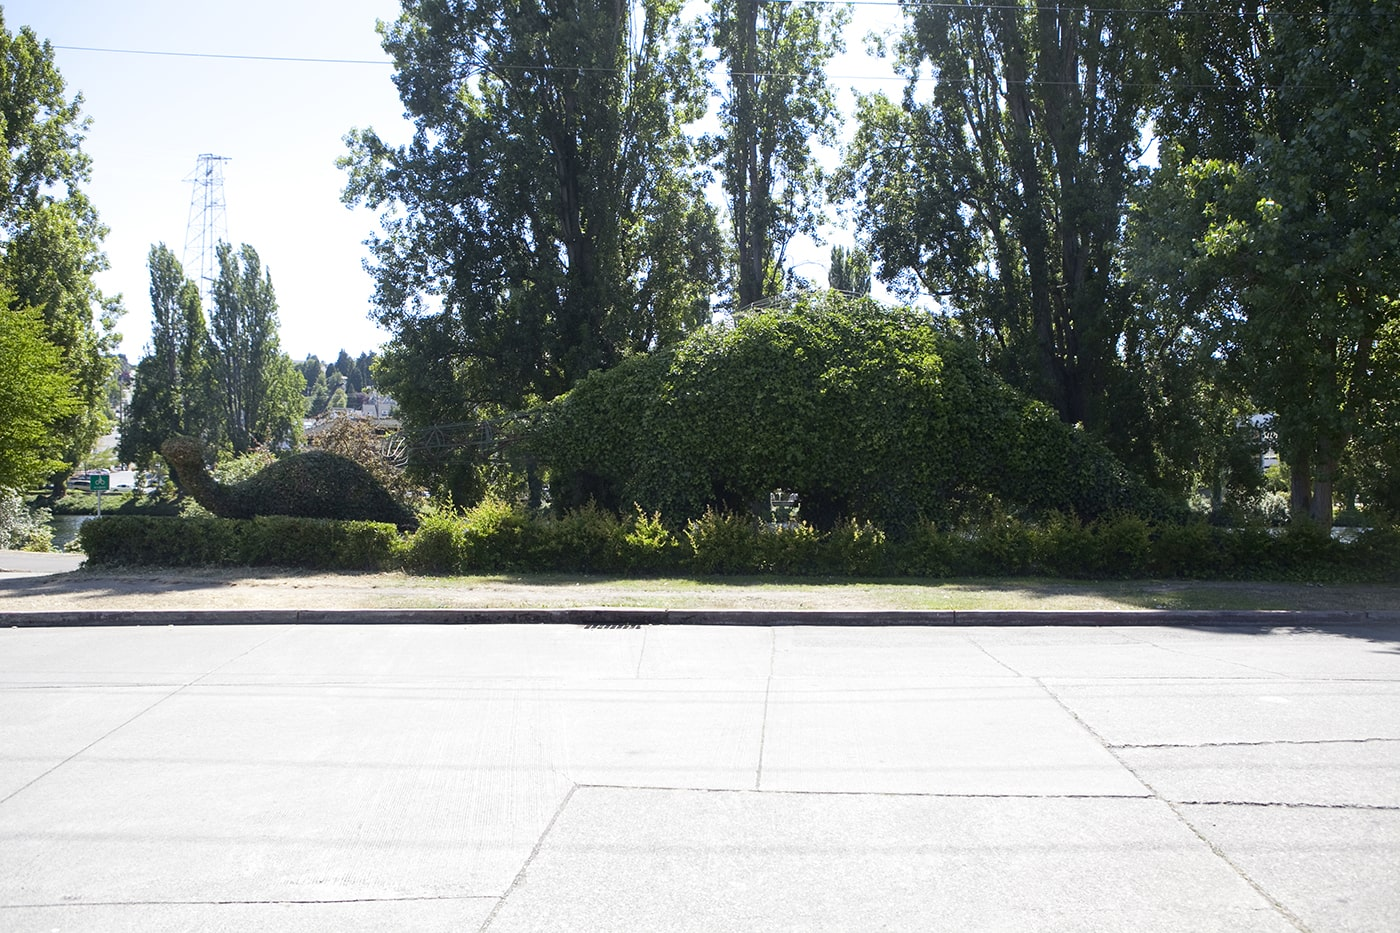 Dinosaur Roadside Attractions - Apatosaurus Dinosaur Topiaries in Fremont, Seattle